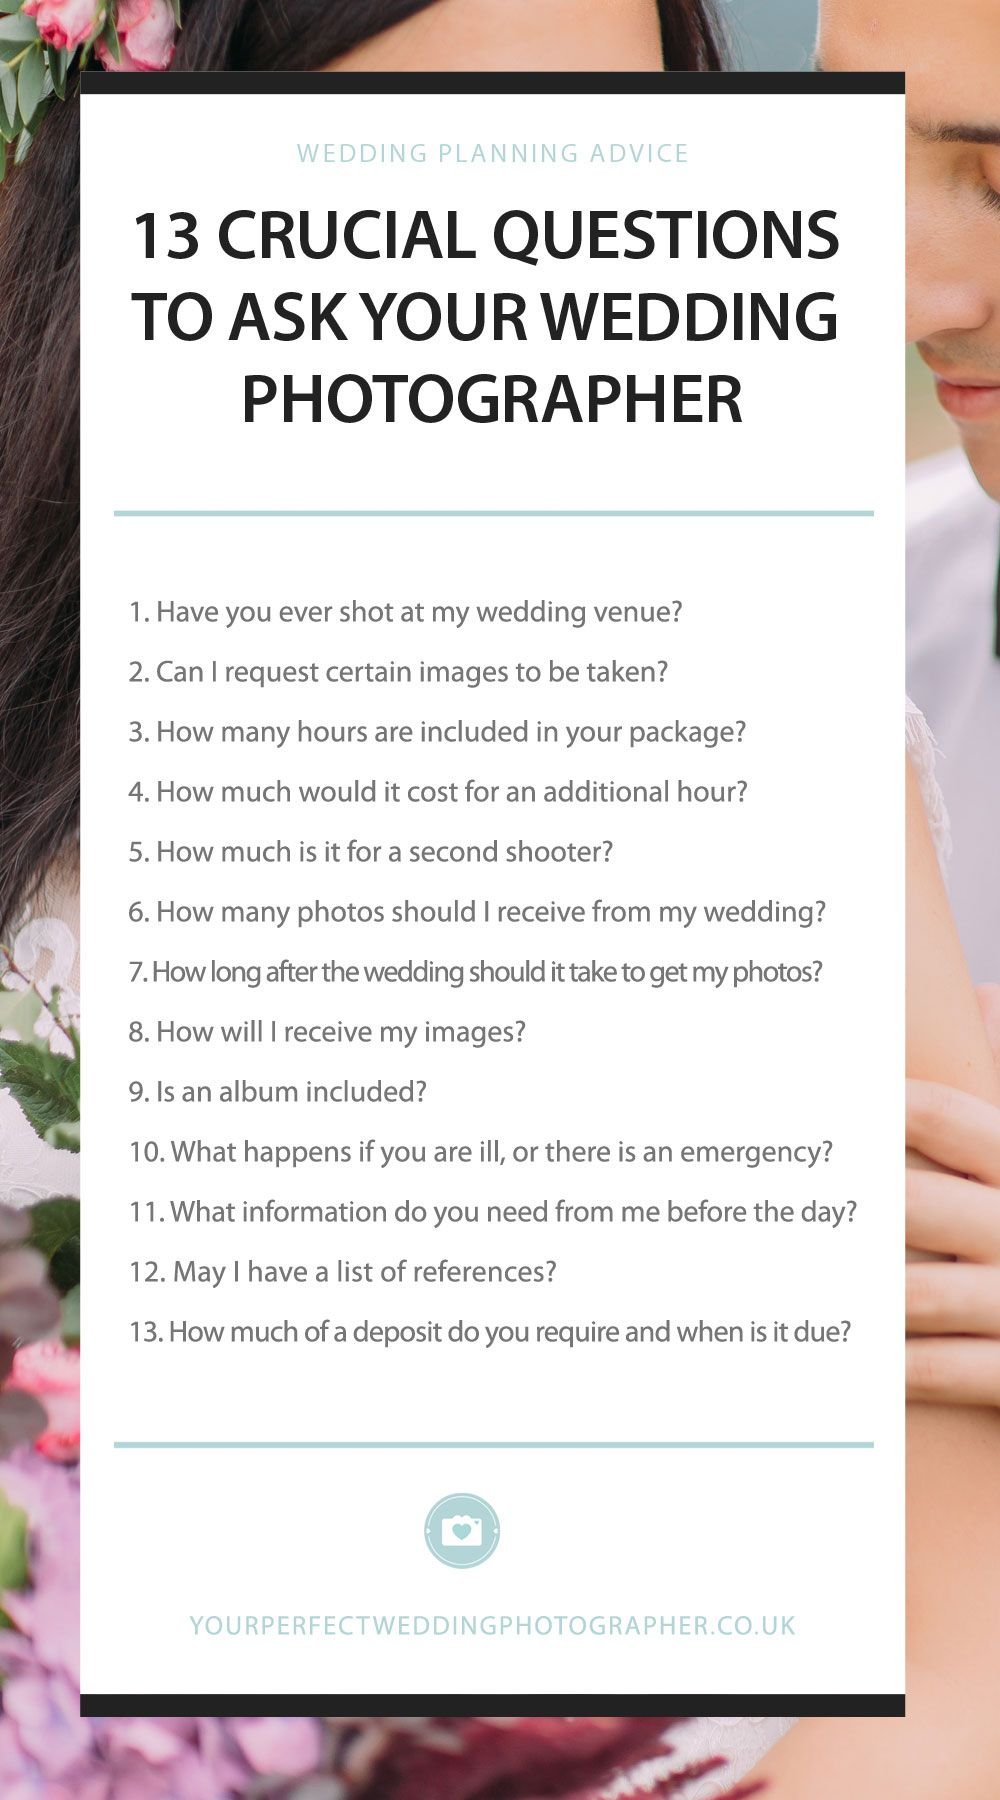 Wedding questions a to ask photographer